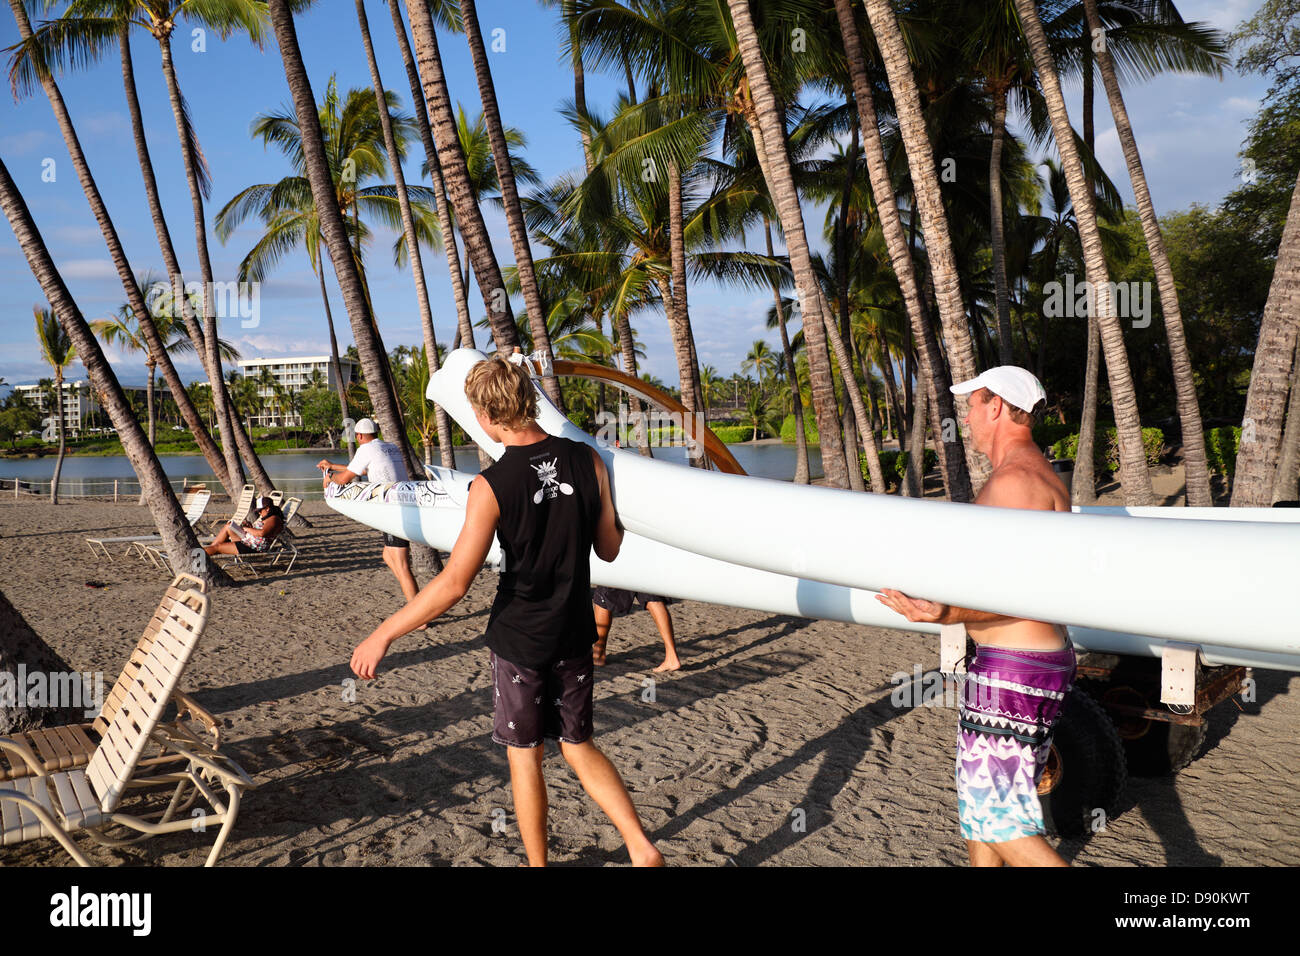 Club members carry outrigger canoe to shoreline at Anaehoomalu Bay in Waikoloa on the Big Island of Hawaii - Stock Image